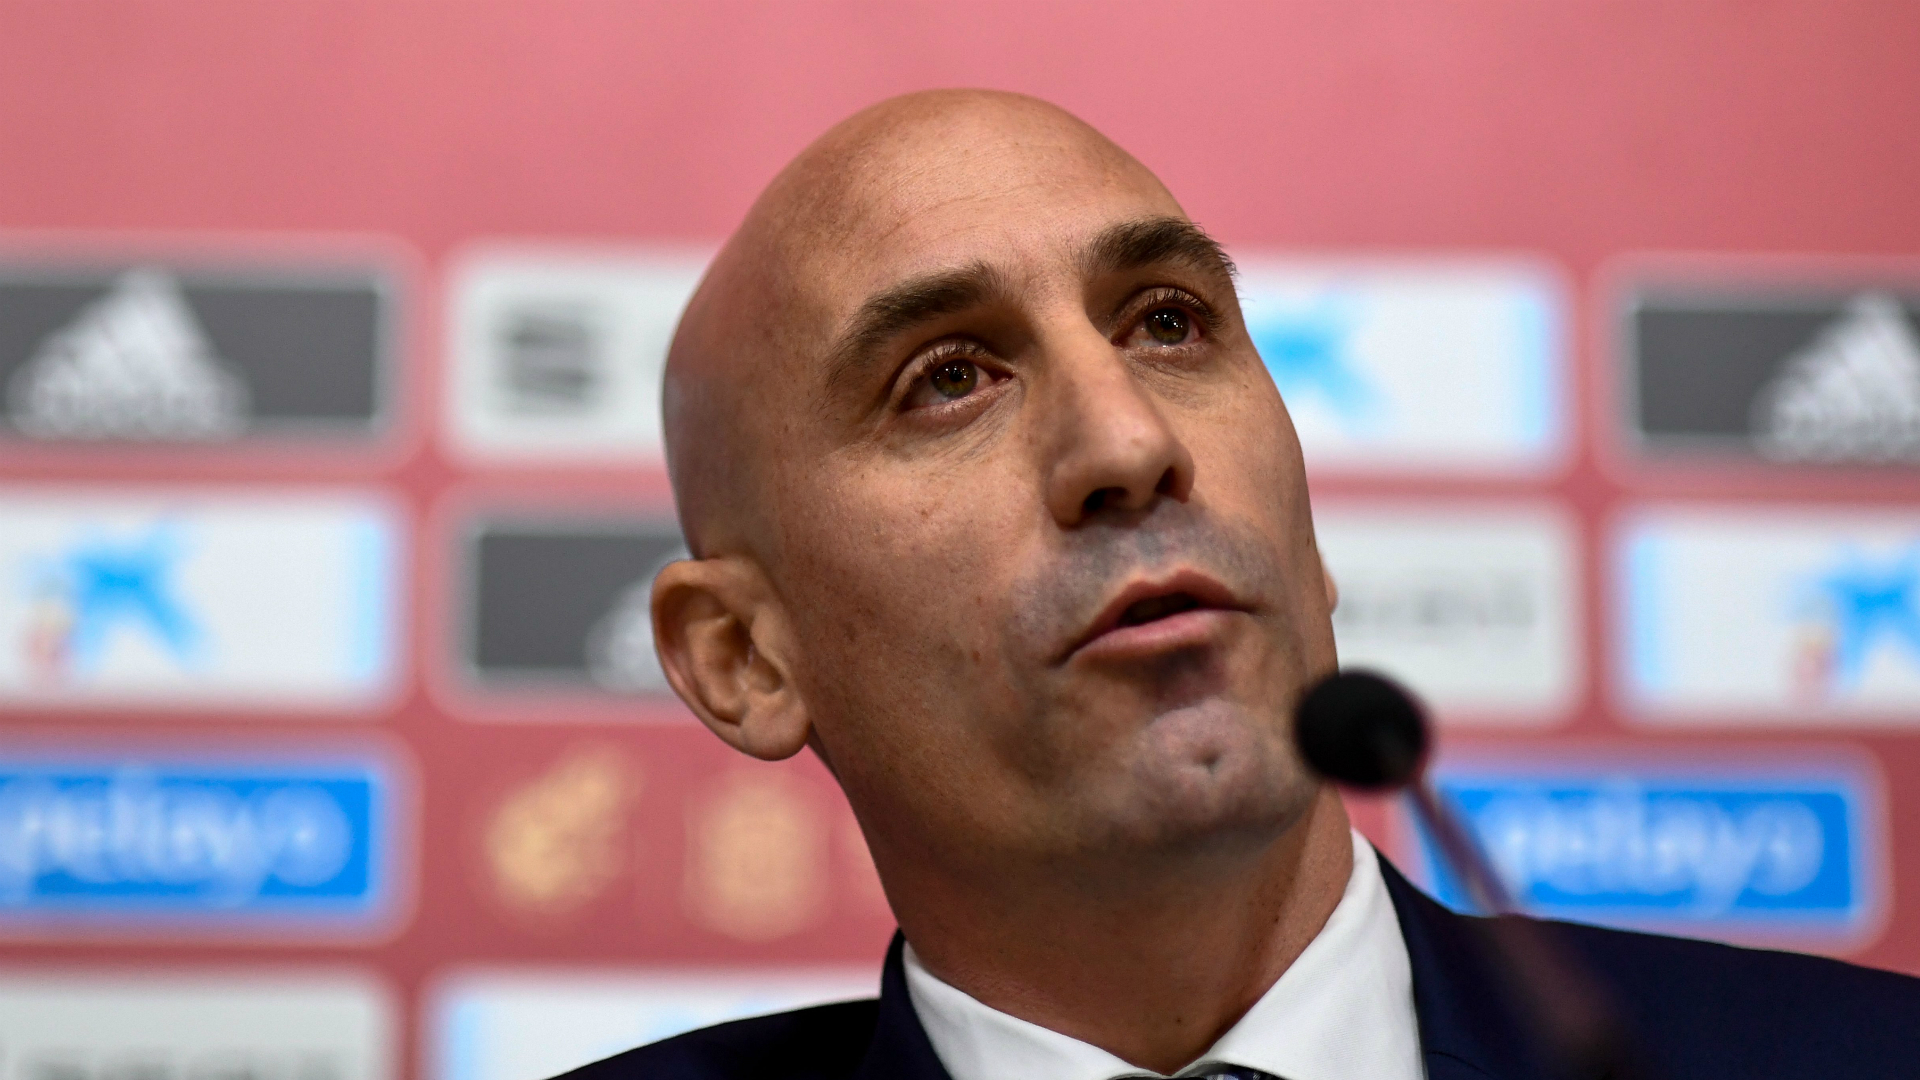 Spain and Portugal confirm plans to bid for 2030 World Cup